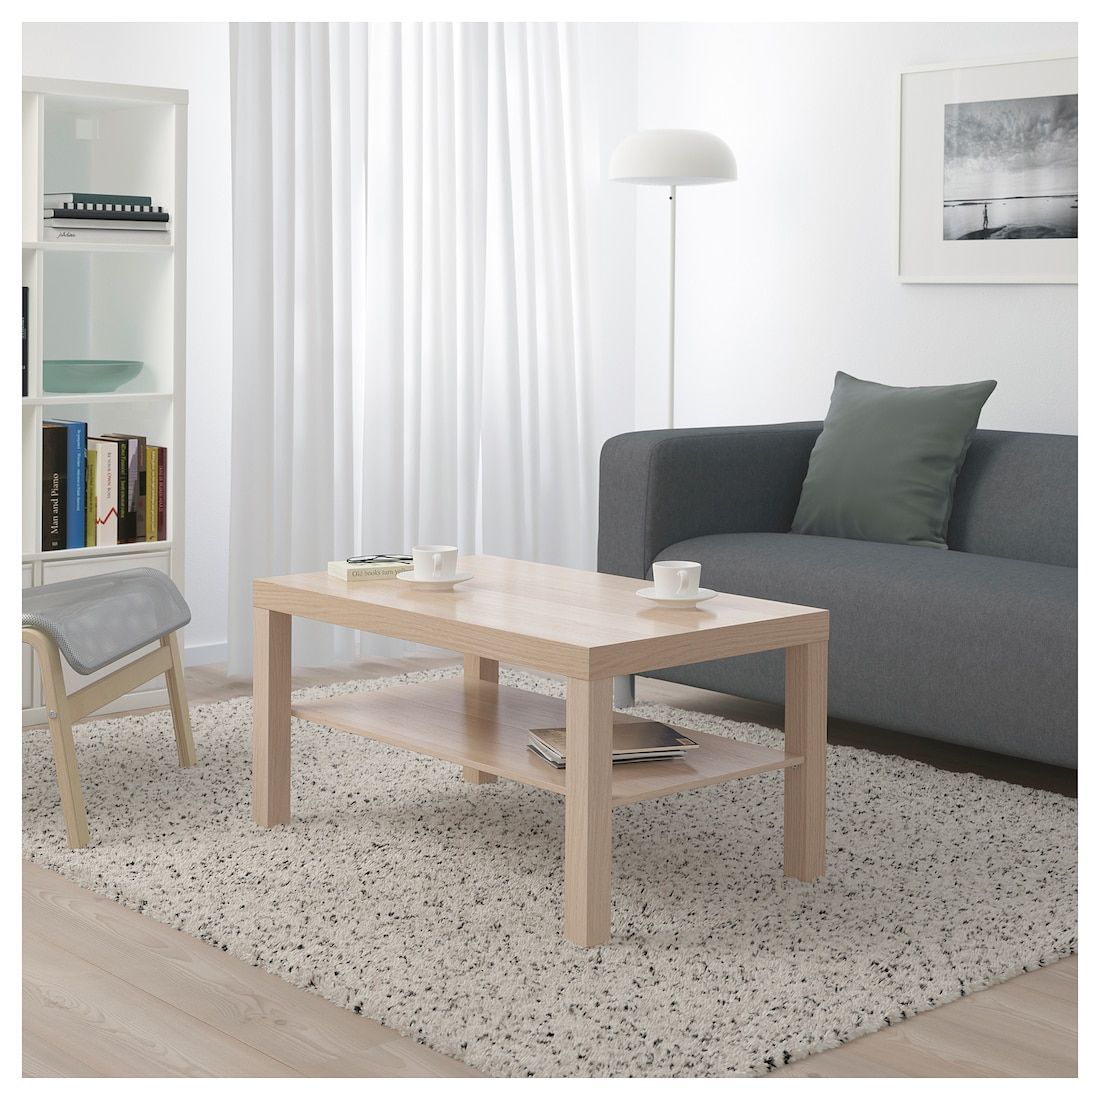 IKEA LACK White Stained OAK Effect Coffee table Lack